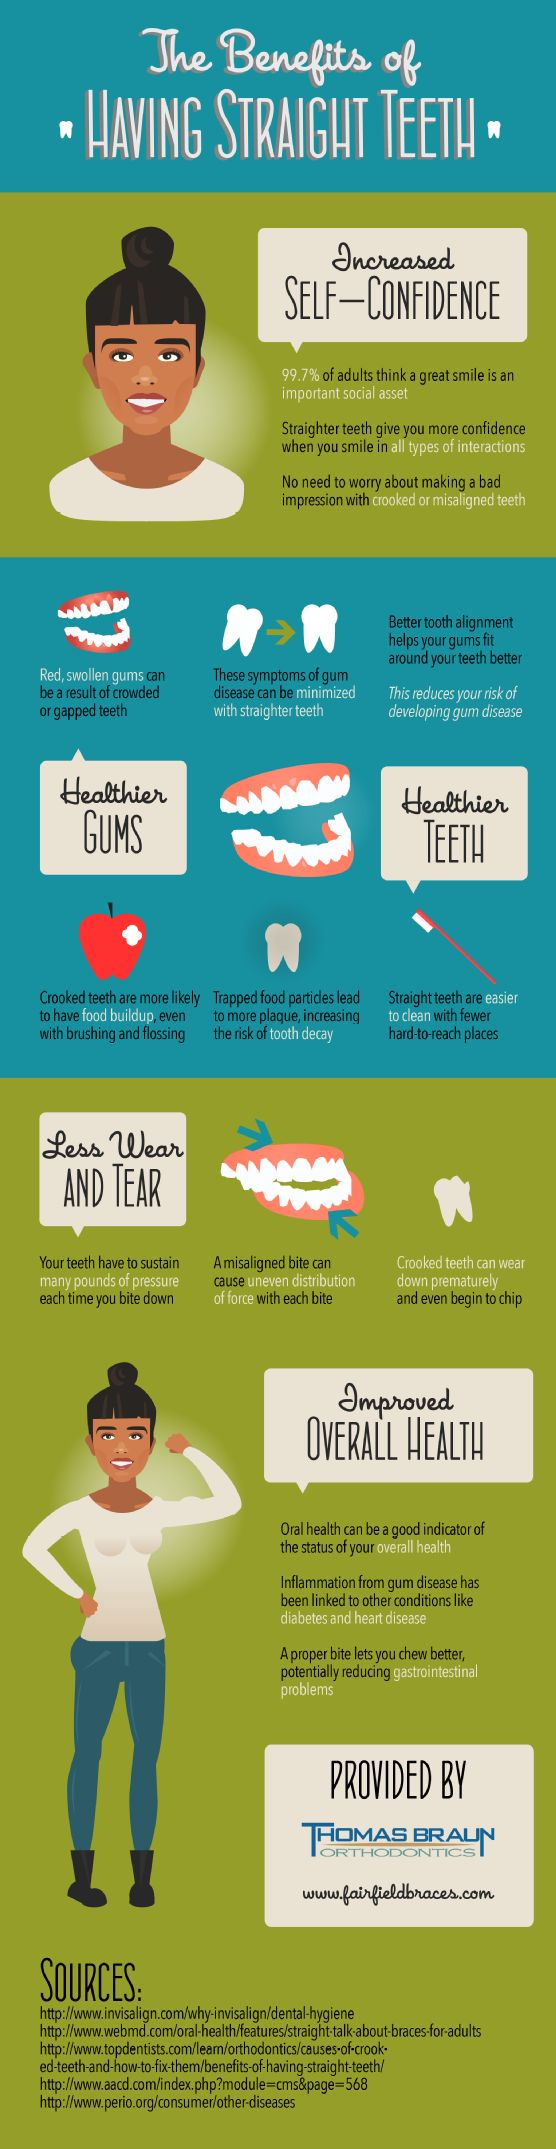 Did you know that oral health is a good indicator of overall health? Inflammation from gum disease has been linked to other conditions, including diabetes and heart disease. Find more oral health facts by reading through this Fairfield Invisalign infographic.: